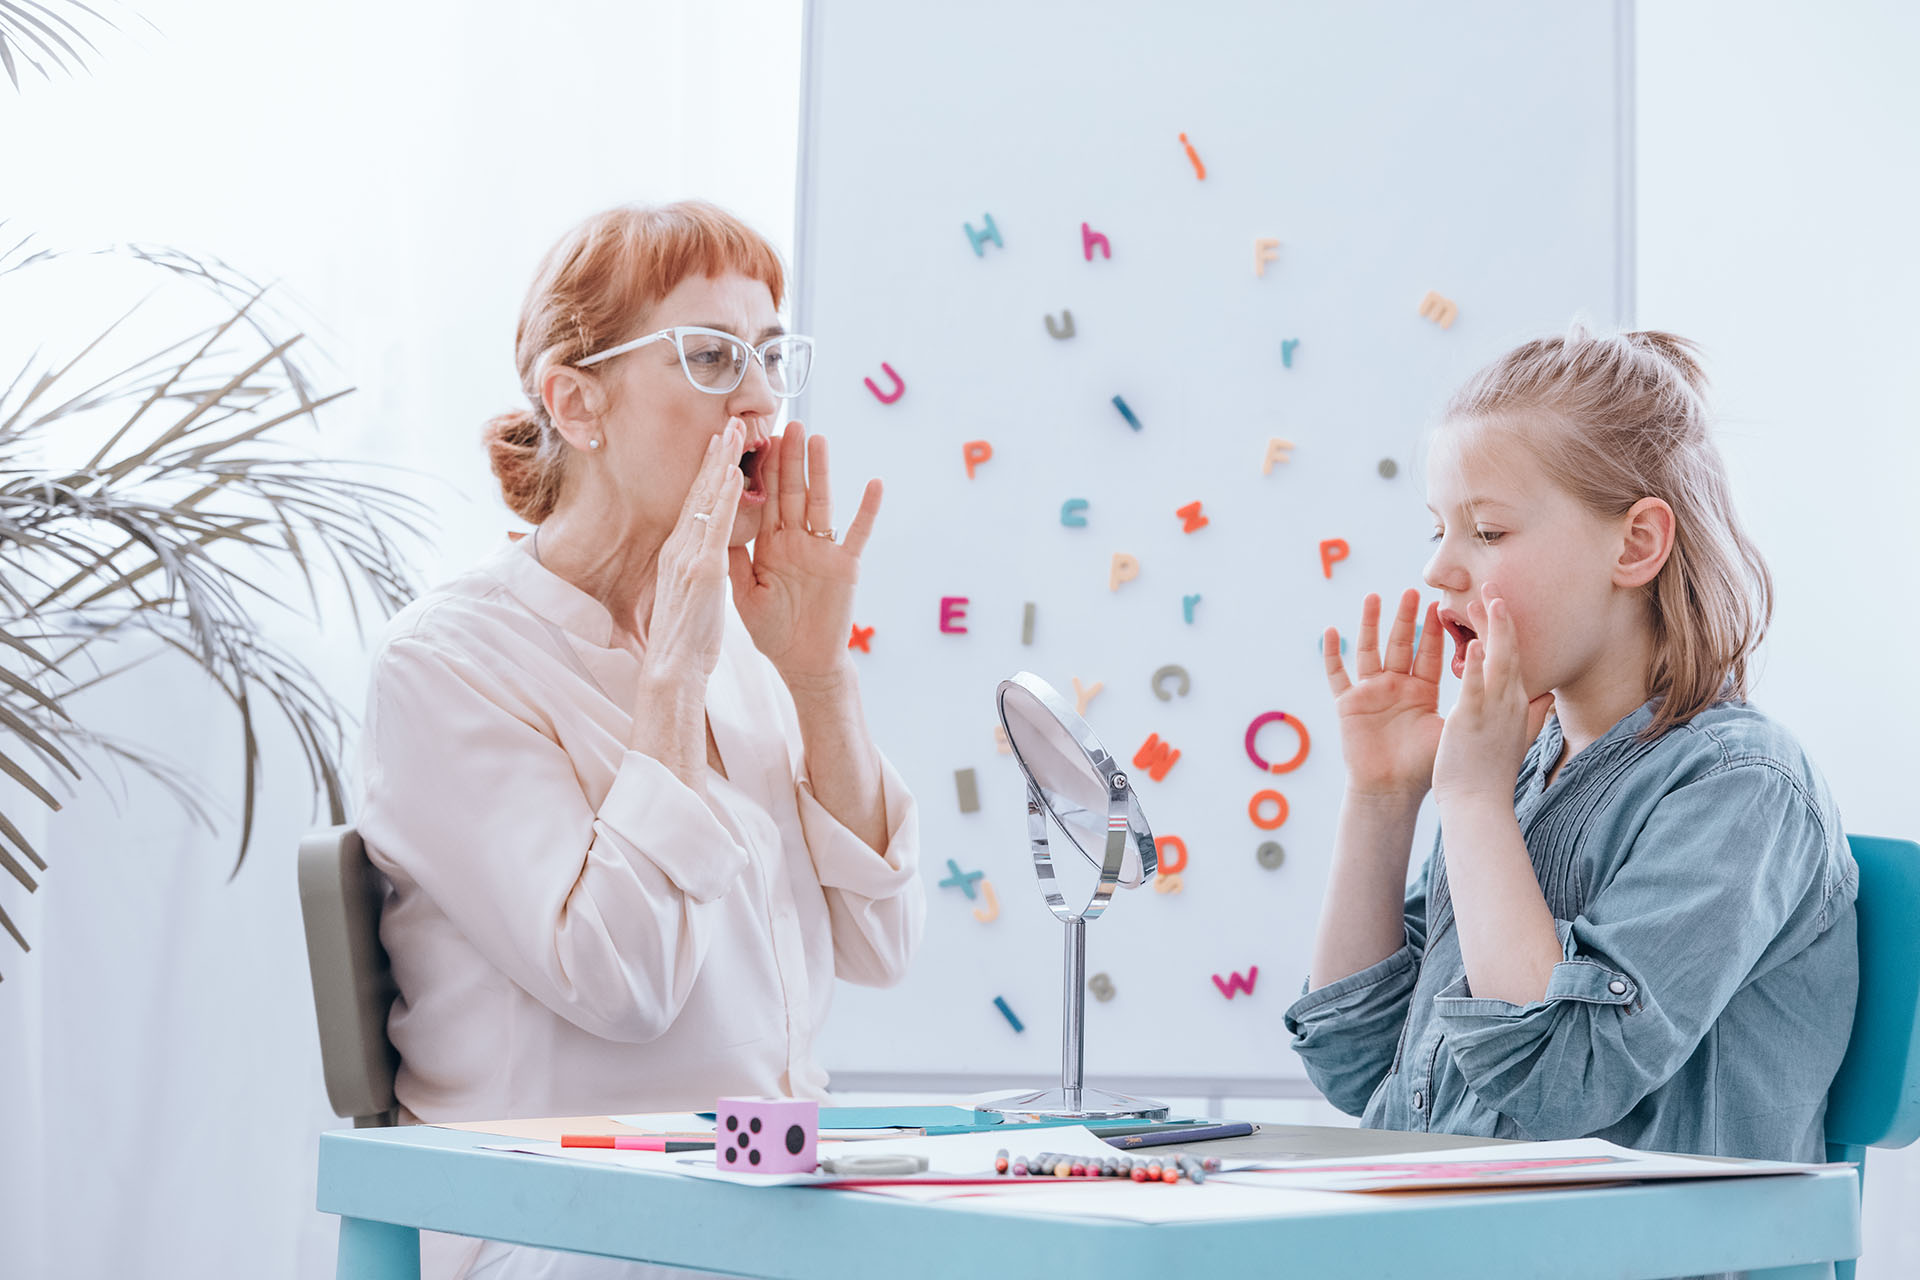 Female speech therapist helps young blonde girl with learning to speak